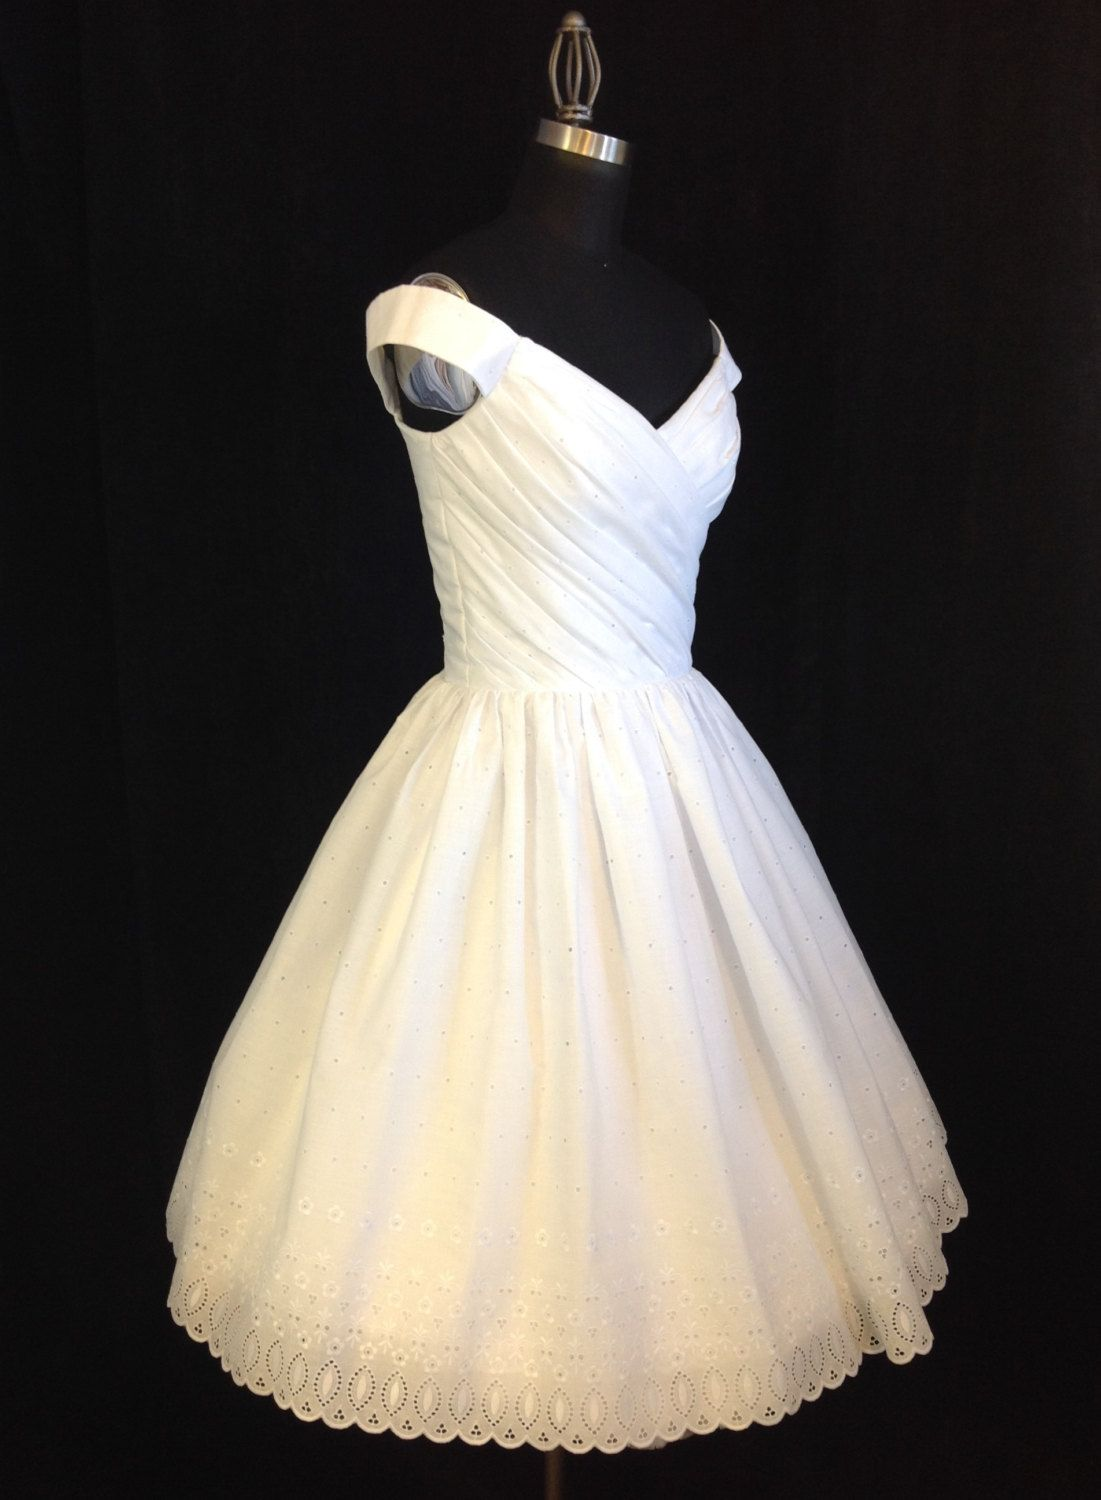 Short Wedding Dress, Off Shoulder, Cotton Eyelet, FLIR-TINI, Tea ...